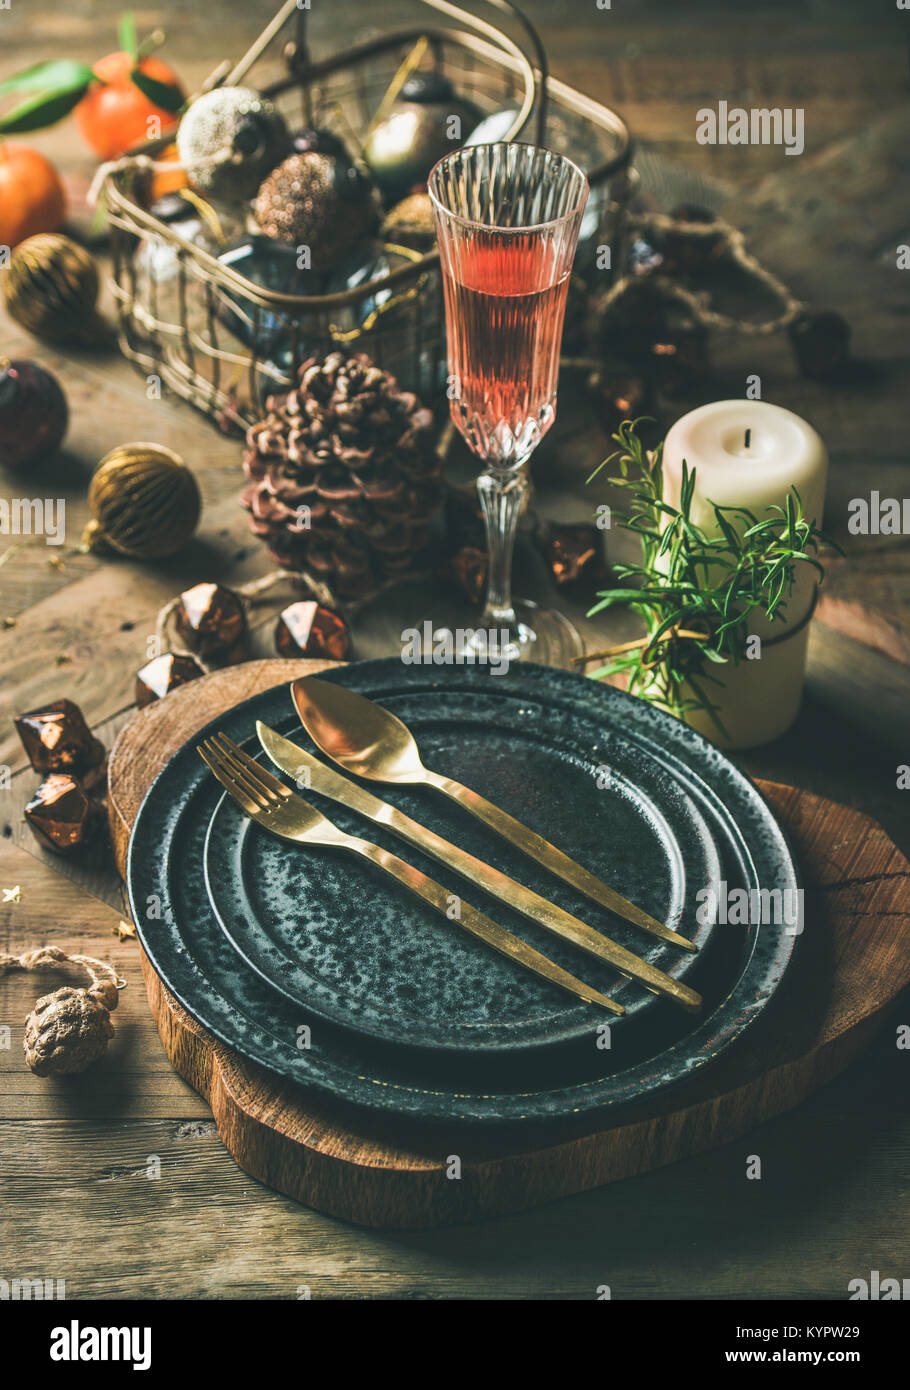 Christmas or New Years eve holiday table setting. Plates, silverware, champaigne in glass, candle and toy festive - Stock Image